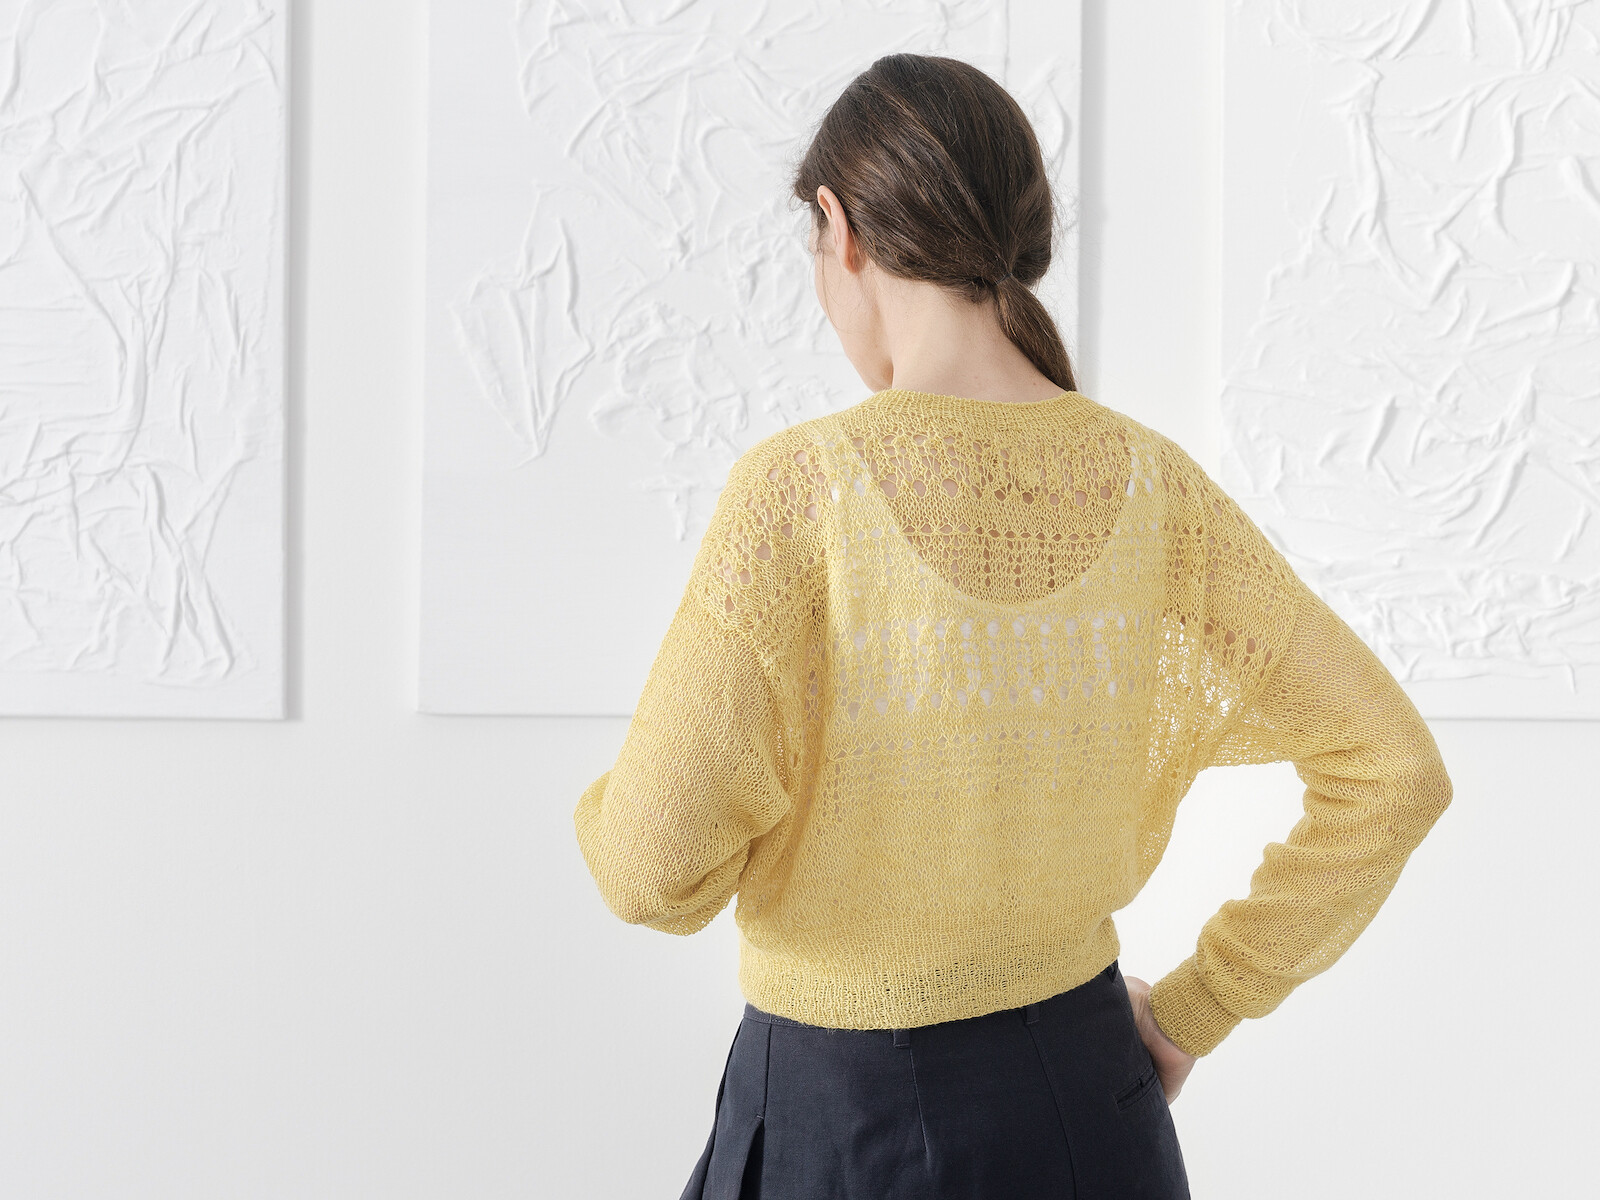 Lacy yoke sweater Image